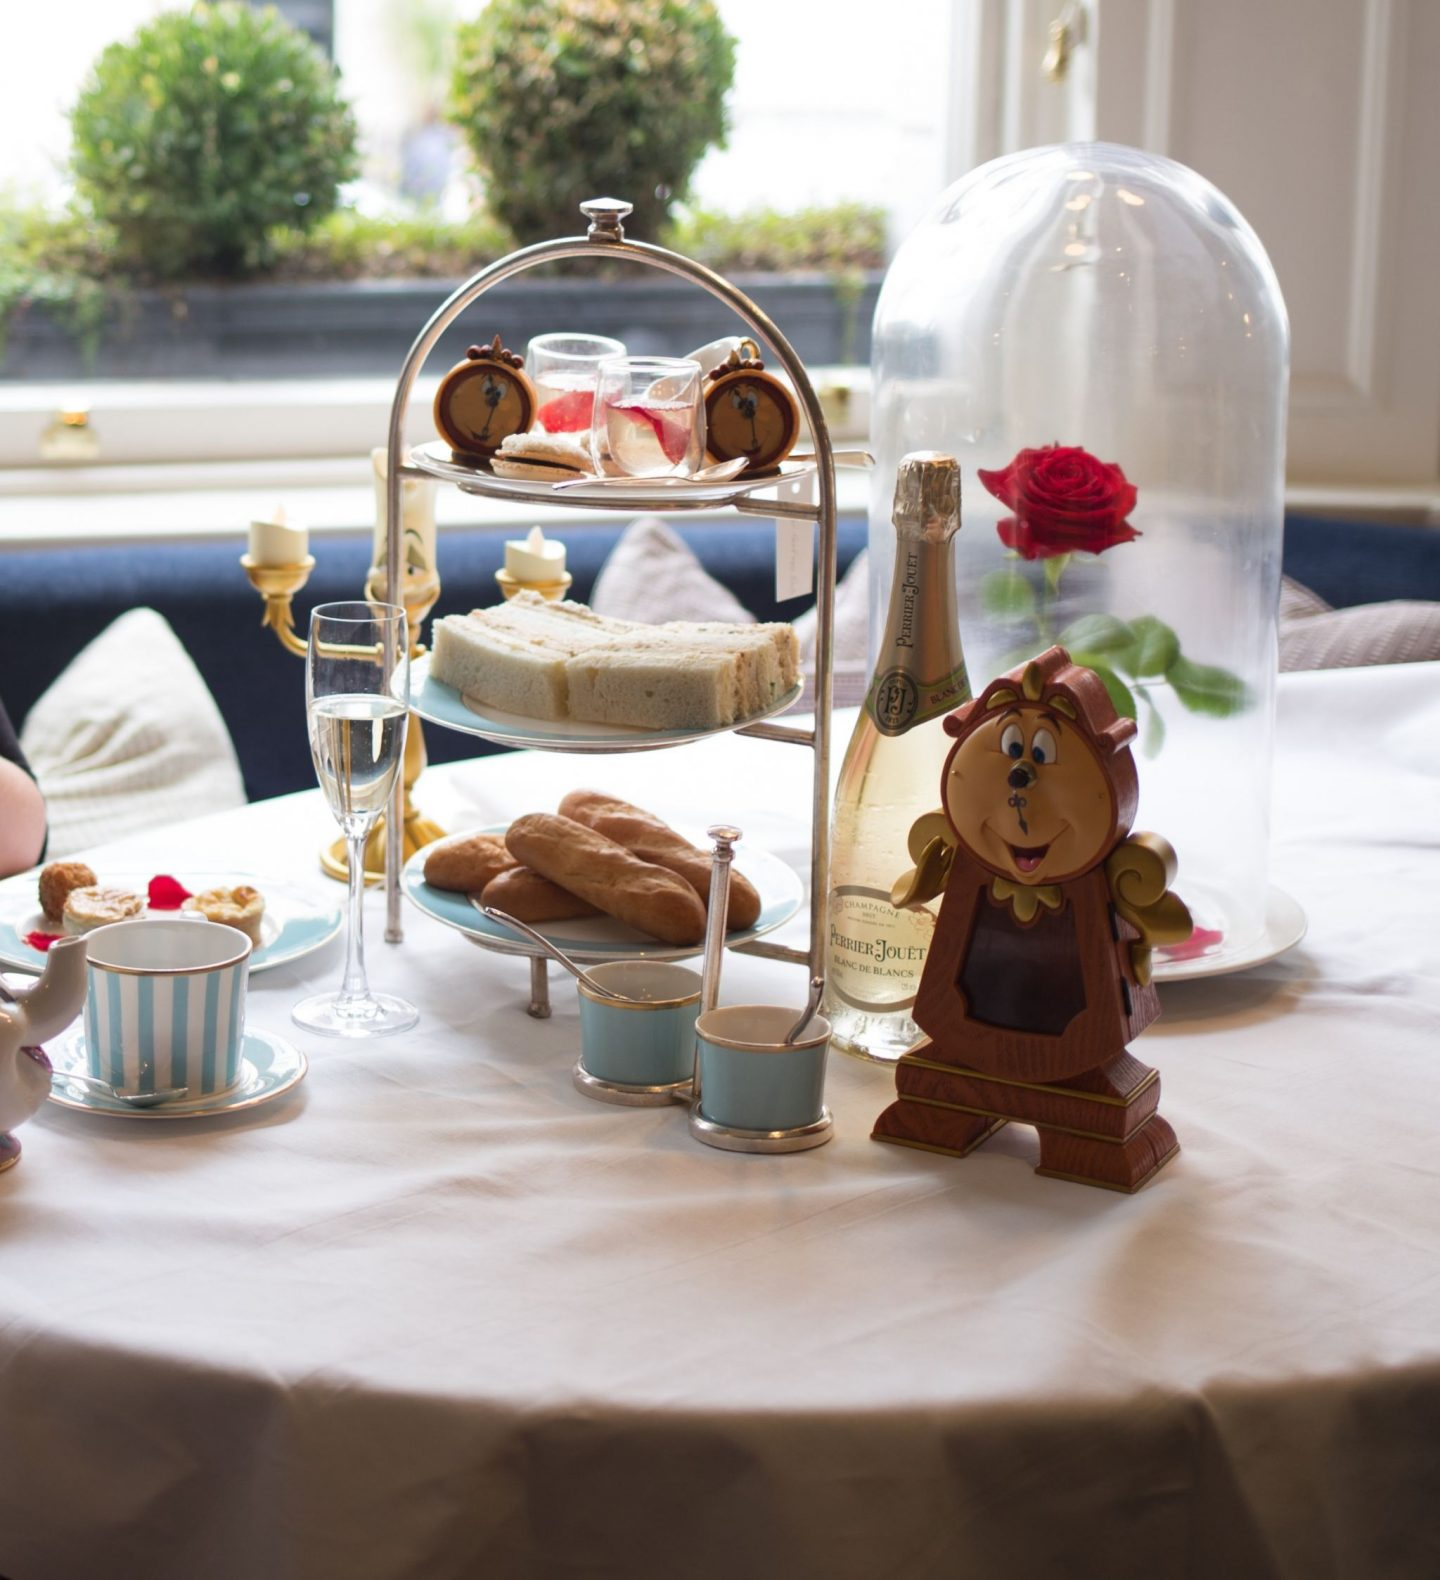 Be Our Guest Afternoon Tea at The Townhouse, Kensington Hotel, Katie KALANCHOE